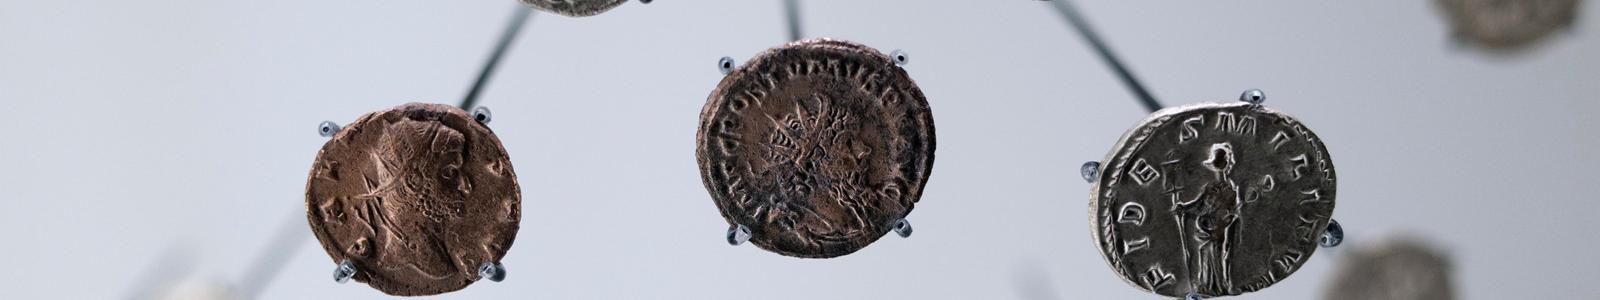 Coin, penny, part of a hoard found at White Lane, Greywell, Mapledurwell and Up Nately, Hampshire in 1989, issued by Alexander III of Scotland, minted by the moneyer Iohan at Berwick, now Berwick-upon-Tweed, Northumberland, 1248-1250